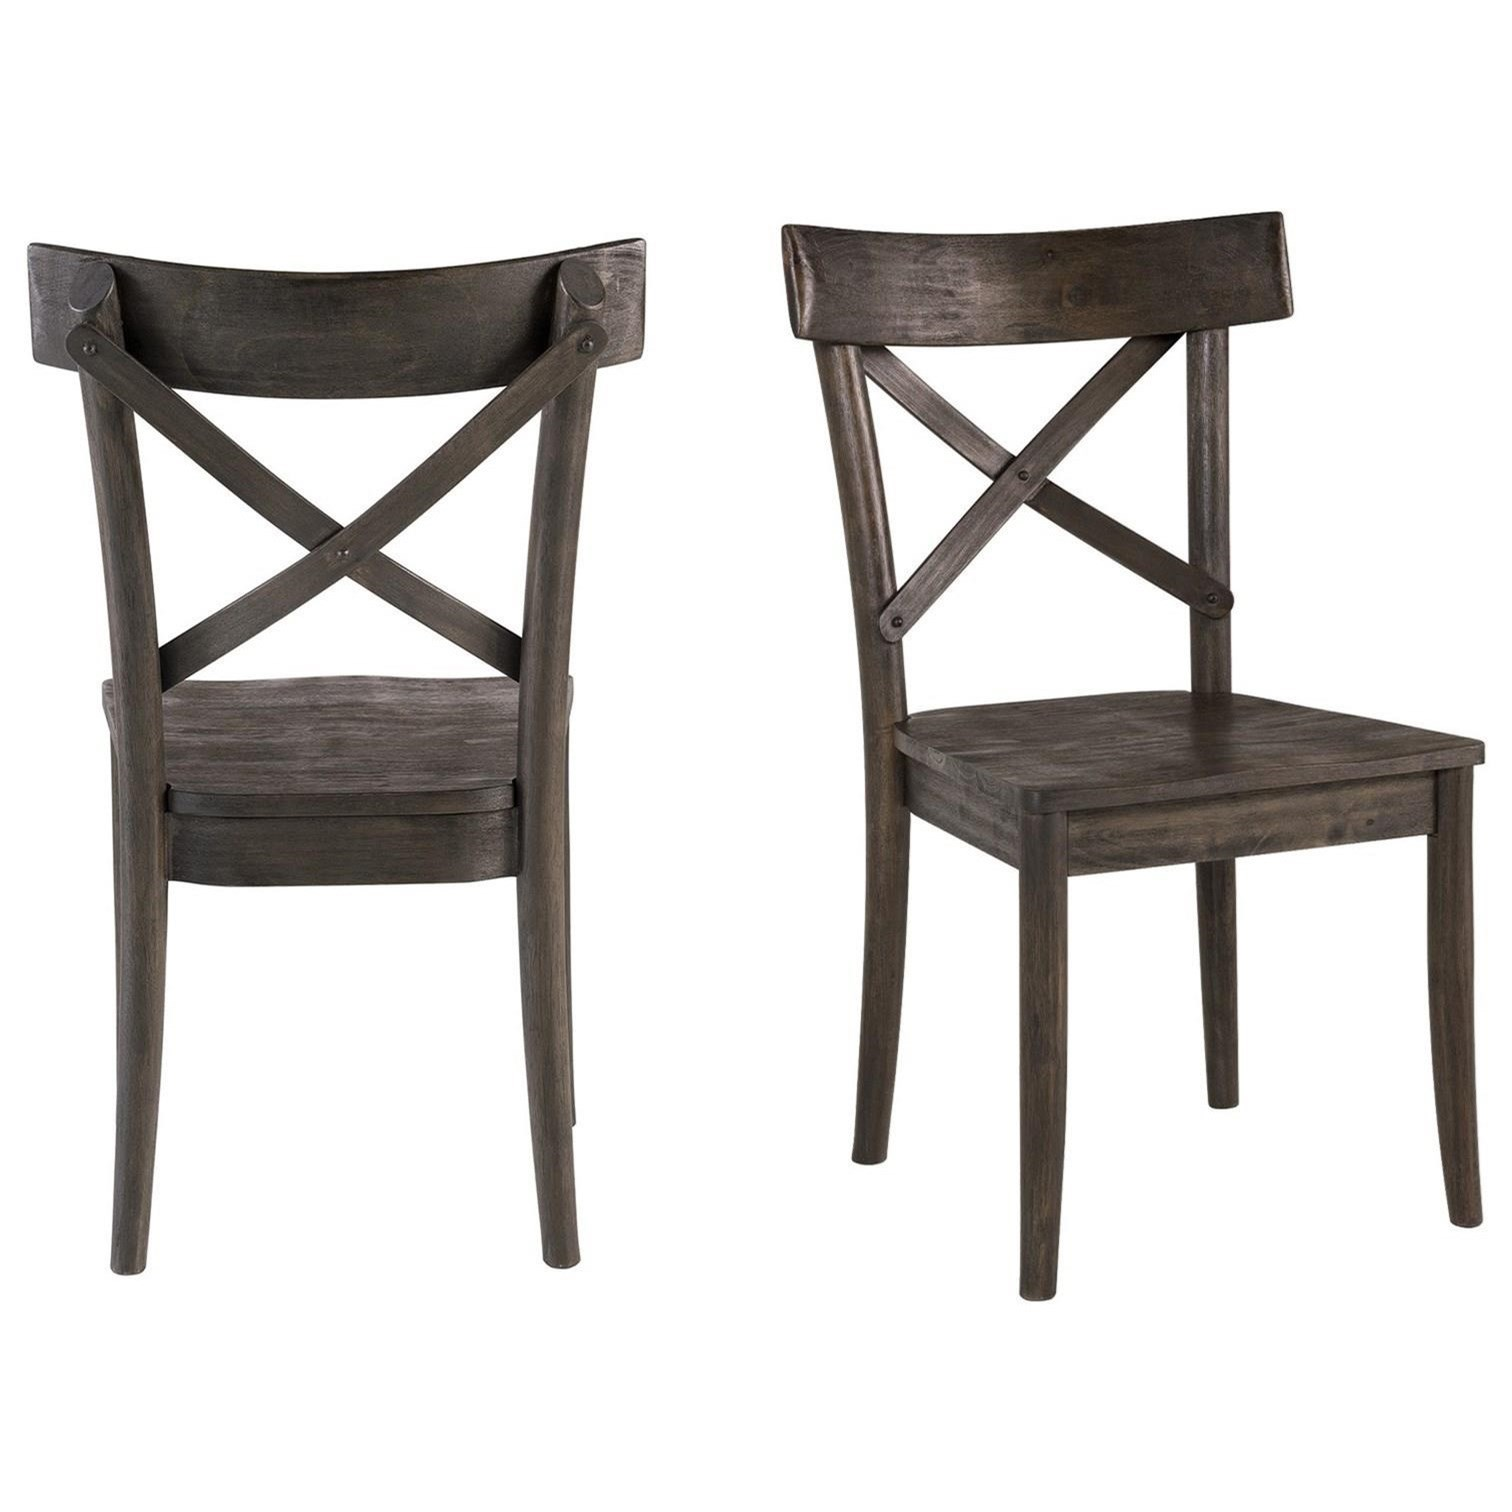 Coronado Dining Side Chair by Elements International at Lindy's Furniture Company